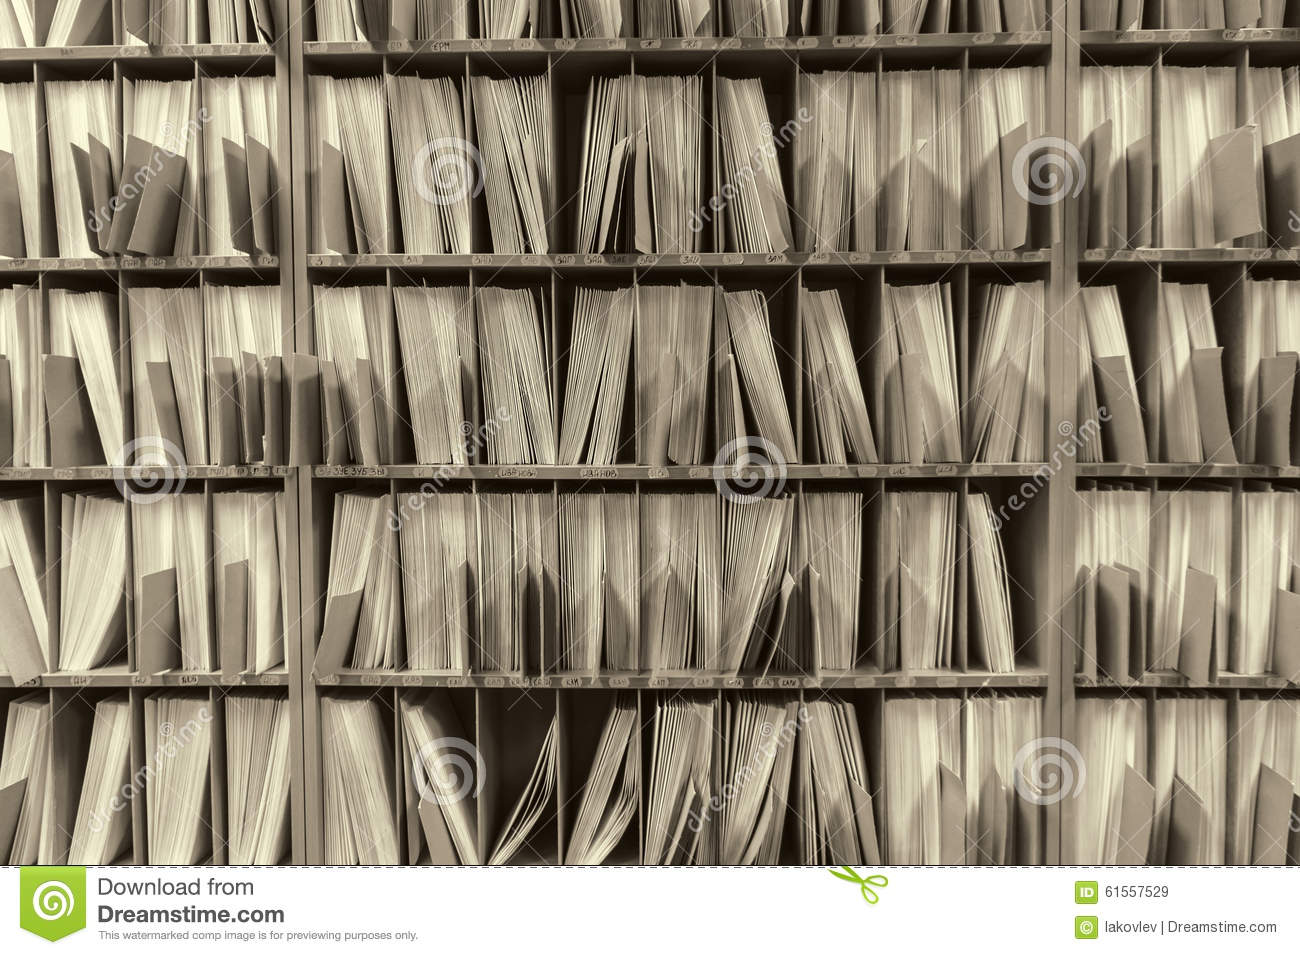 record keeping research paper Medical recordkeeping is essential to assuring quality health care records   was recorded on loose scraps of paper and medical records were poorly  archived  while conducting hospital-based research in west africa, we.